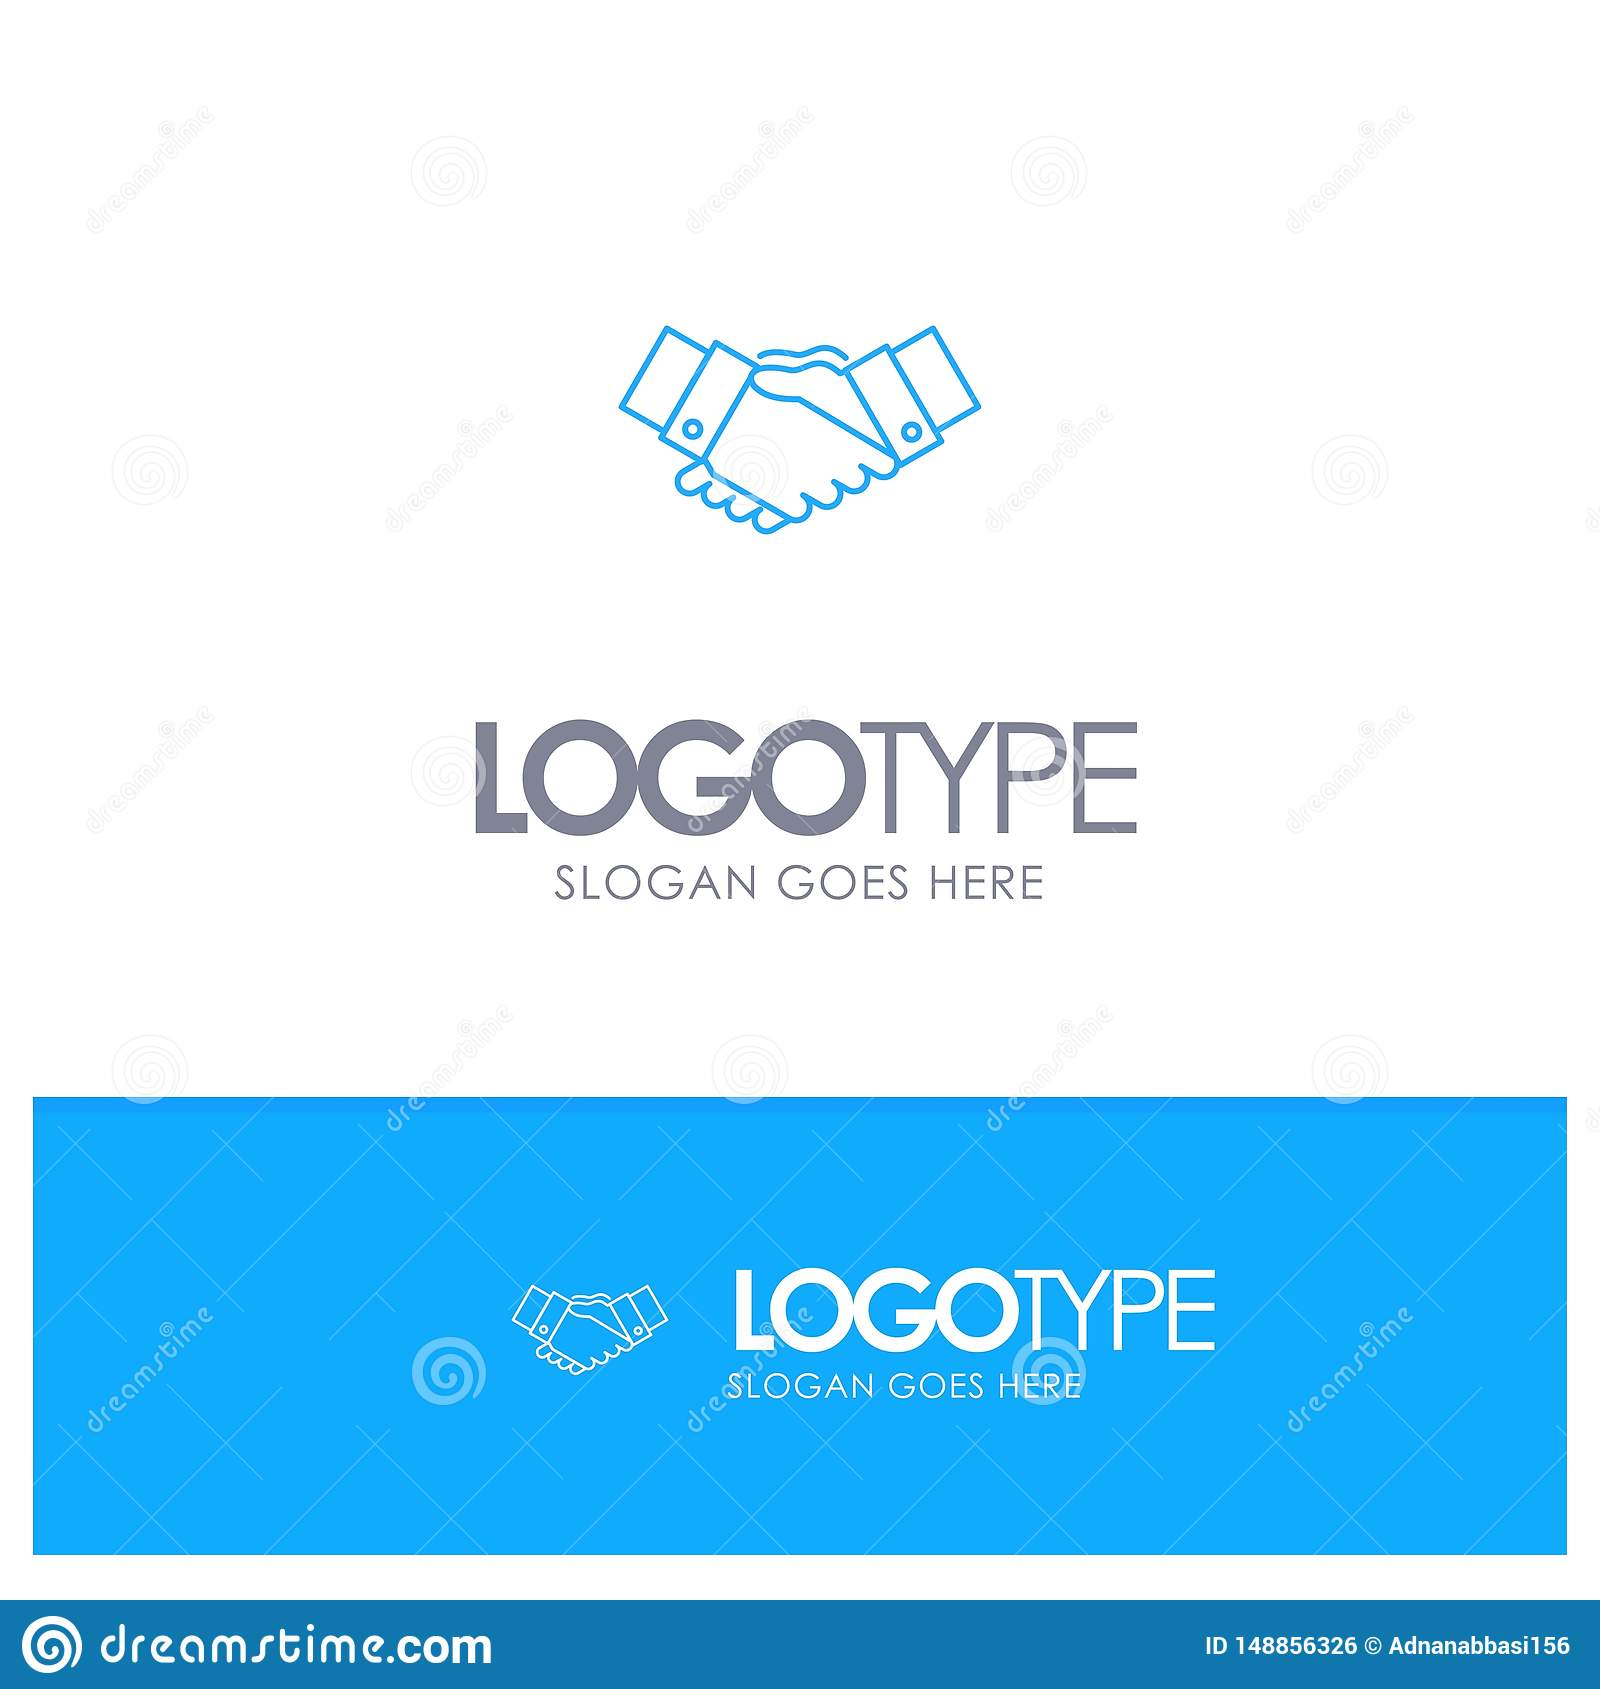 Handshake, Agreement, Business, Hands, Partners, Partnership Blue outLine Logo with place for tagline